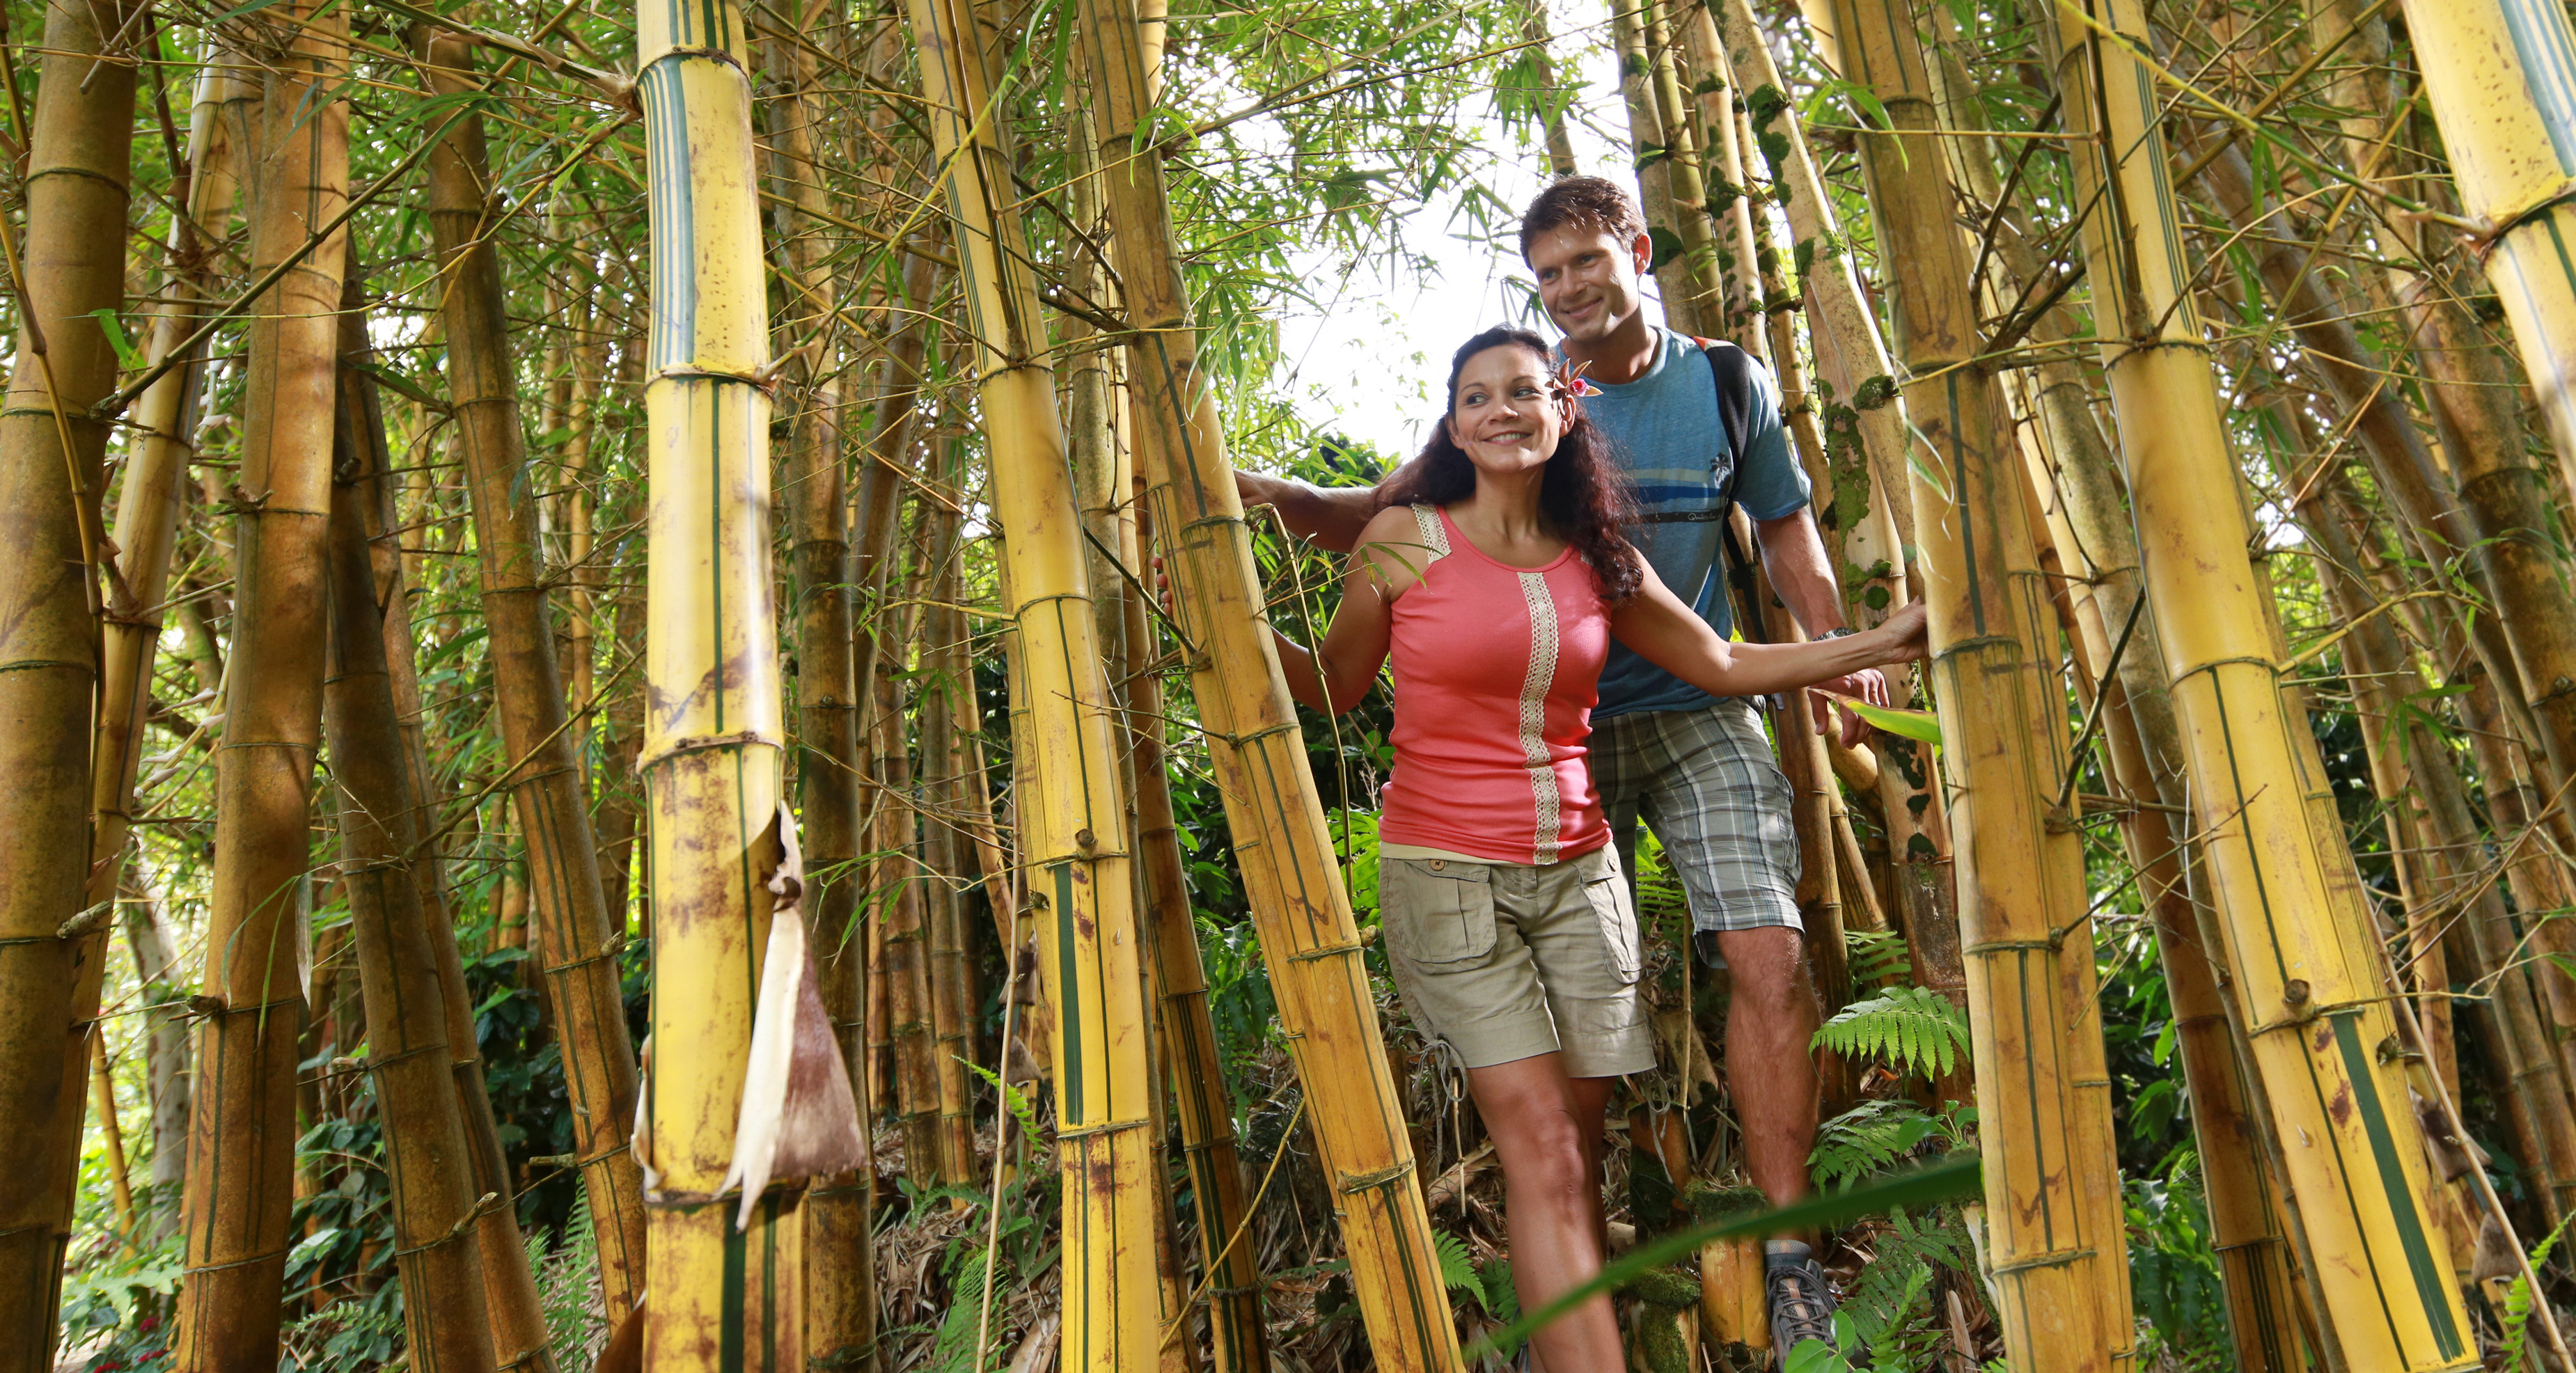 A young man and woman hike a trail through a tall bamboo forest